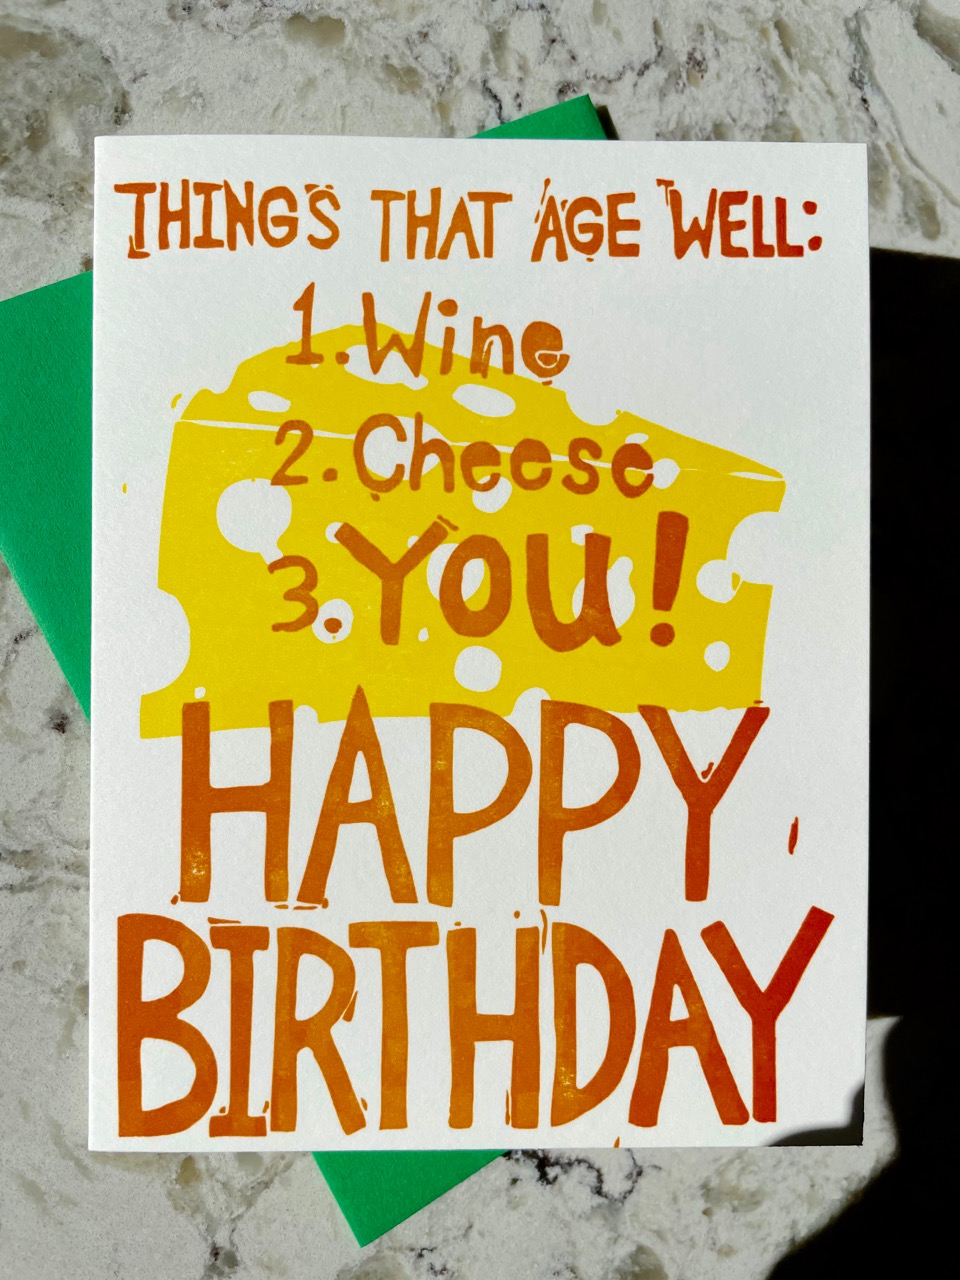 "Orange hand-carved text that reads ""Things that age well; 1. wine, 2. cheese, 3. you! Happy Birthday!"" letterpress printed over a yellow wedge of hole-filled cheese on a white cotton folding card"